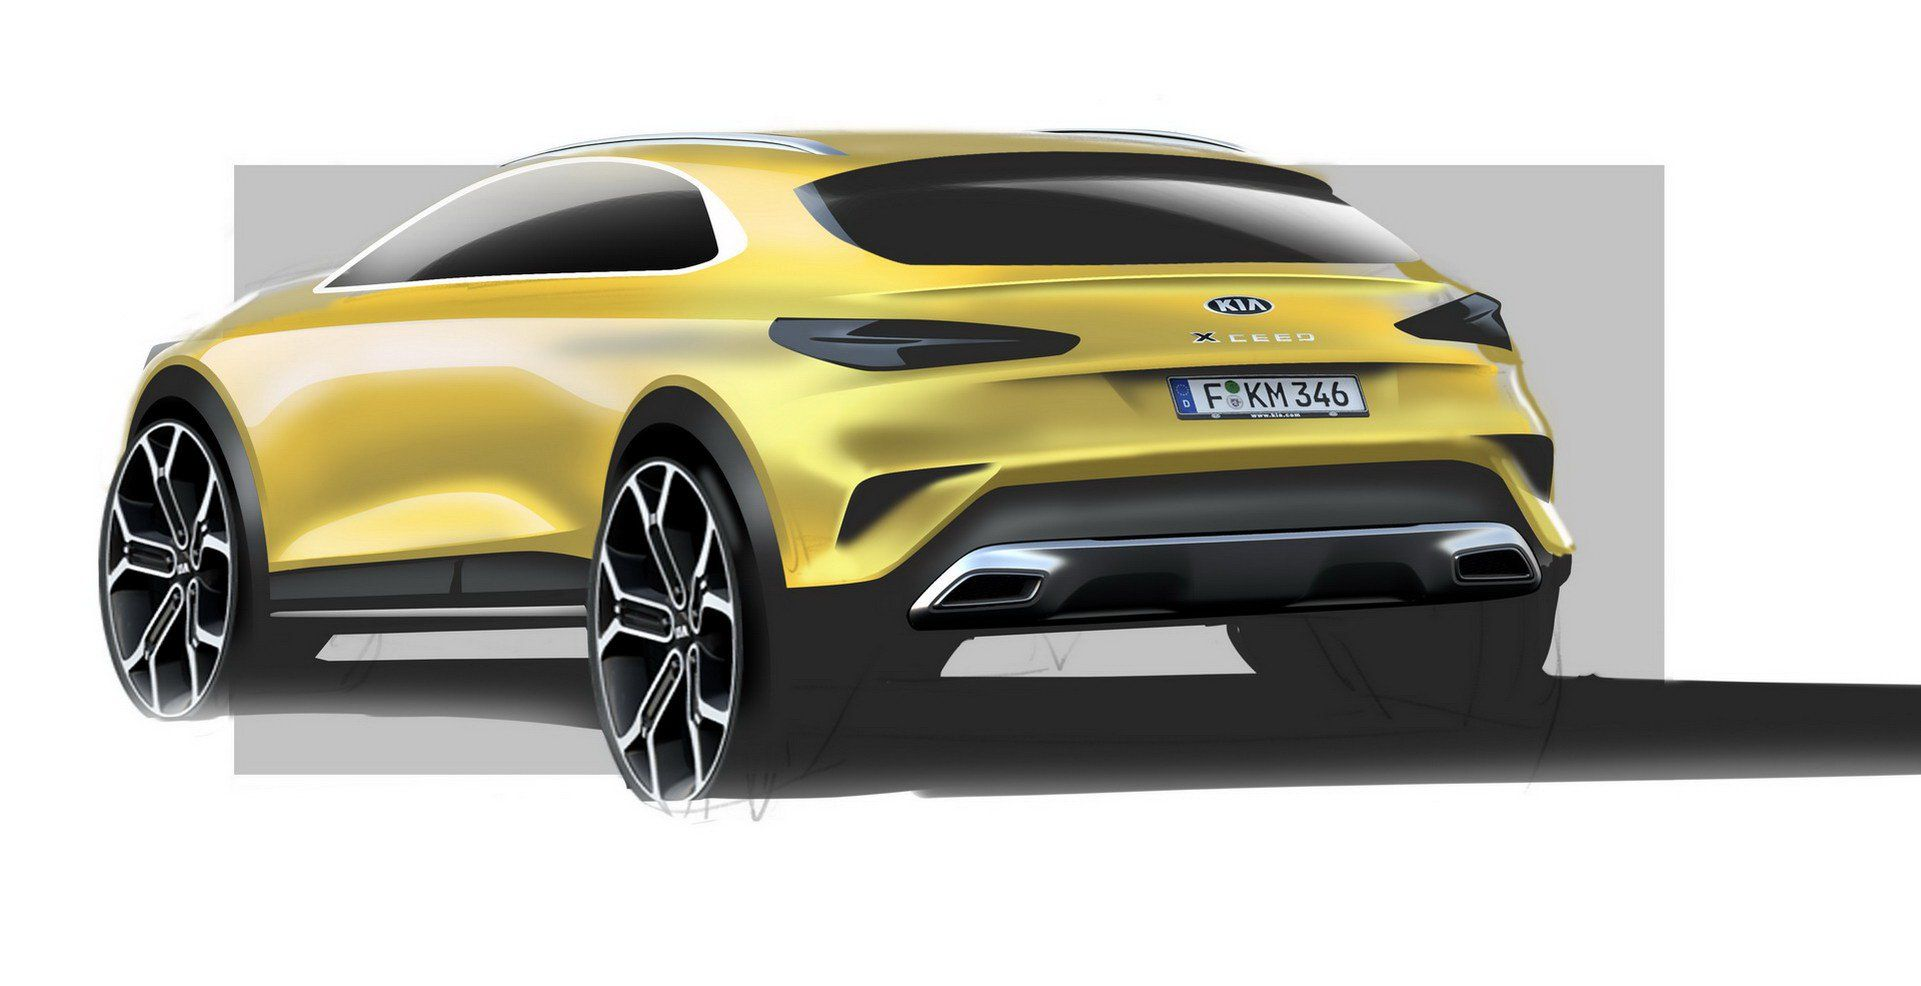 New 2020 Kia Xceed Unveiled As The Korean Brand S New Cuv For Europe Carscoops Kia Korean Brands Kia Ceed